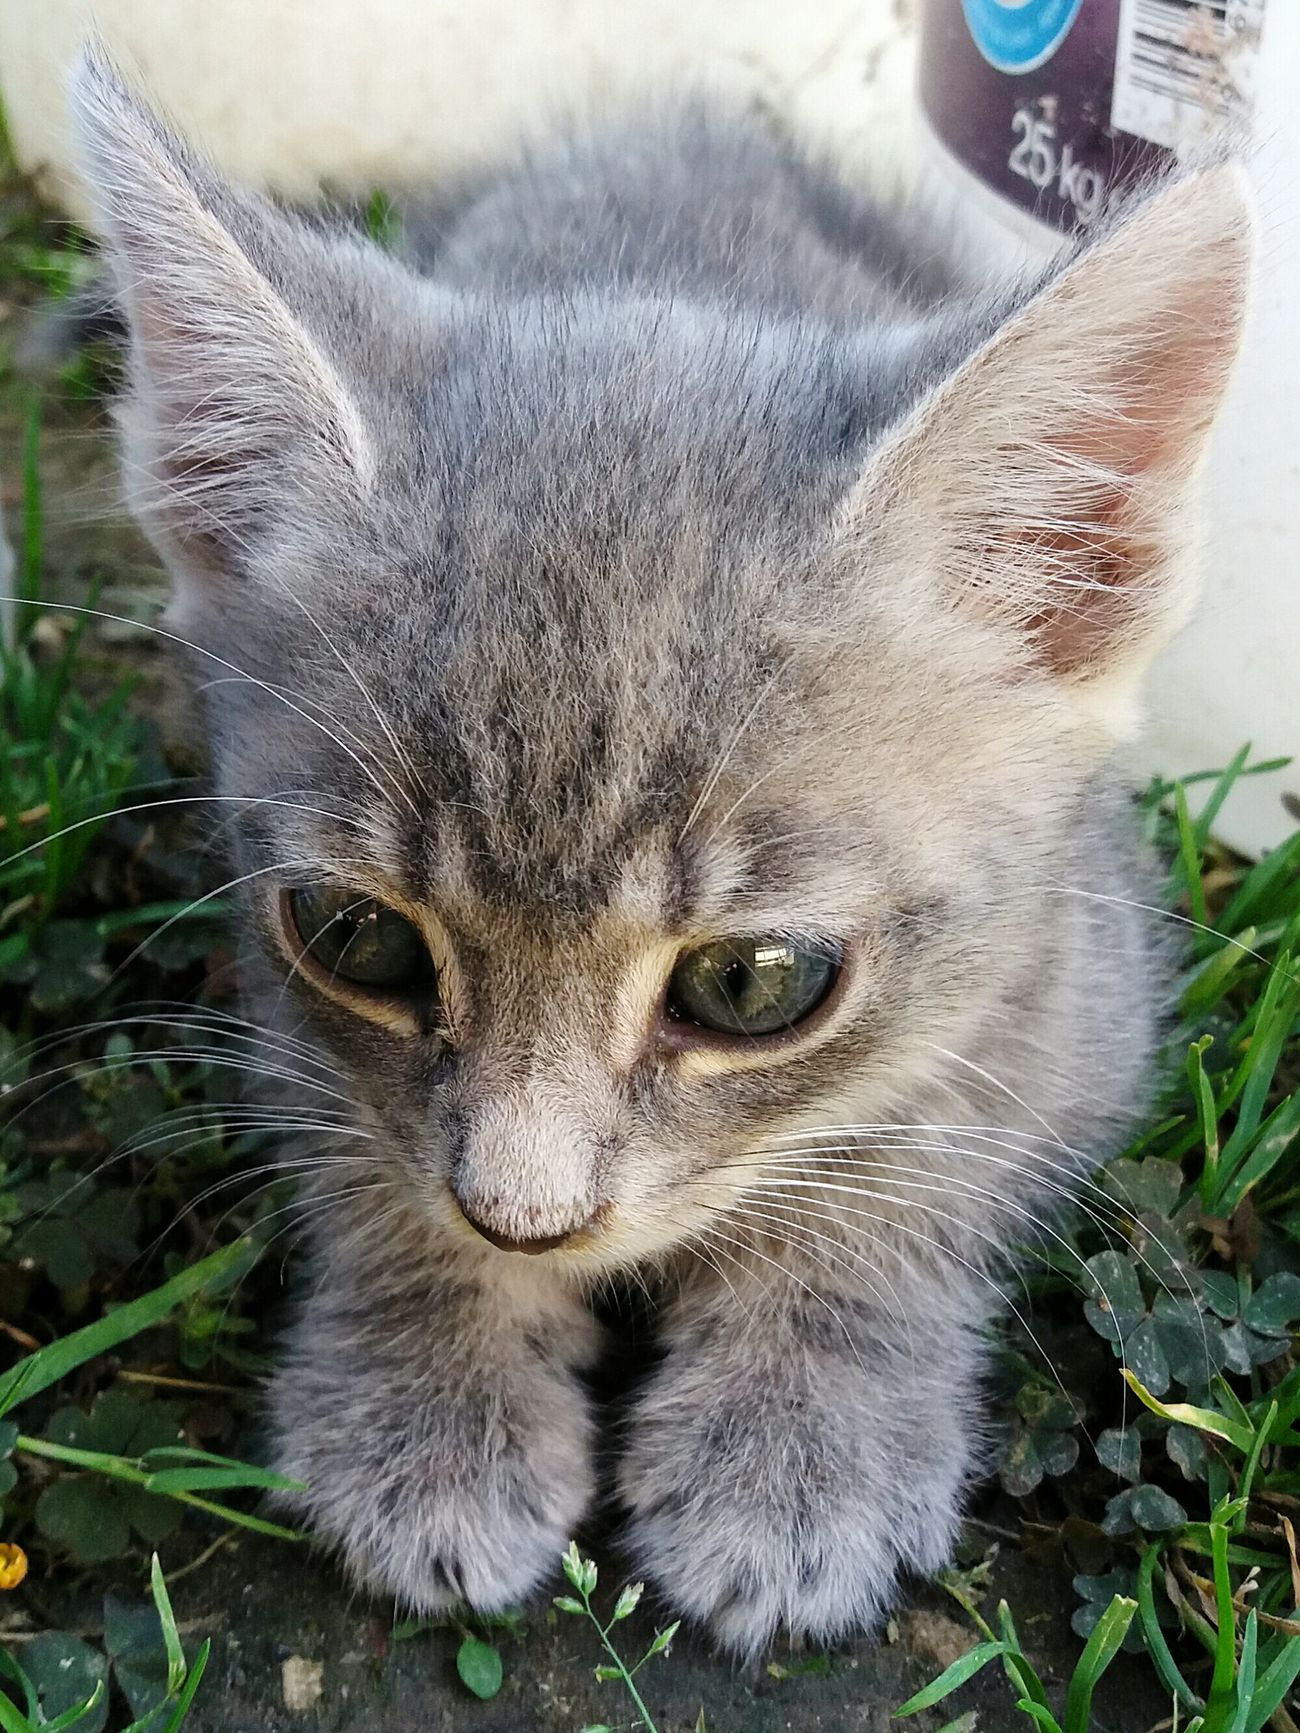 One Animal Cat Domestic Cat Domestic Animals Animal Themes Pets Kid Cat Samsungj5photography📱 Myphoto Photography MyPhotography Colorful